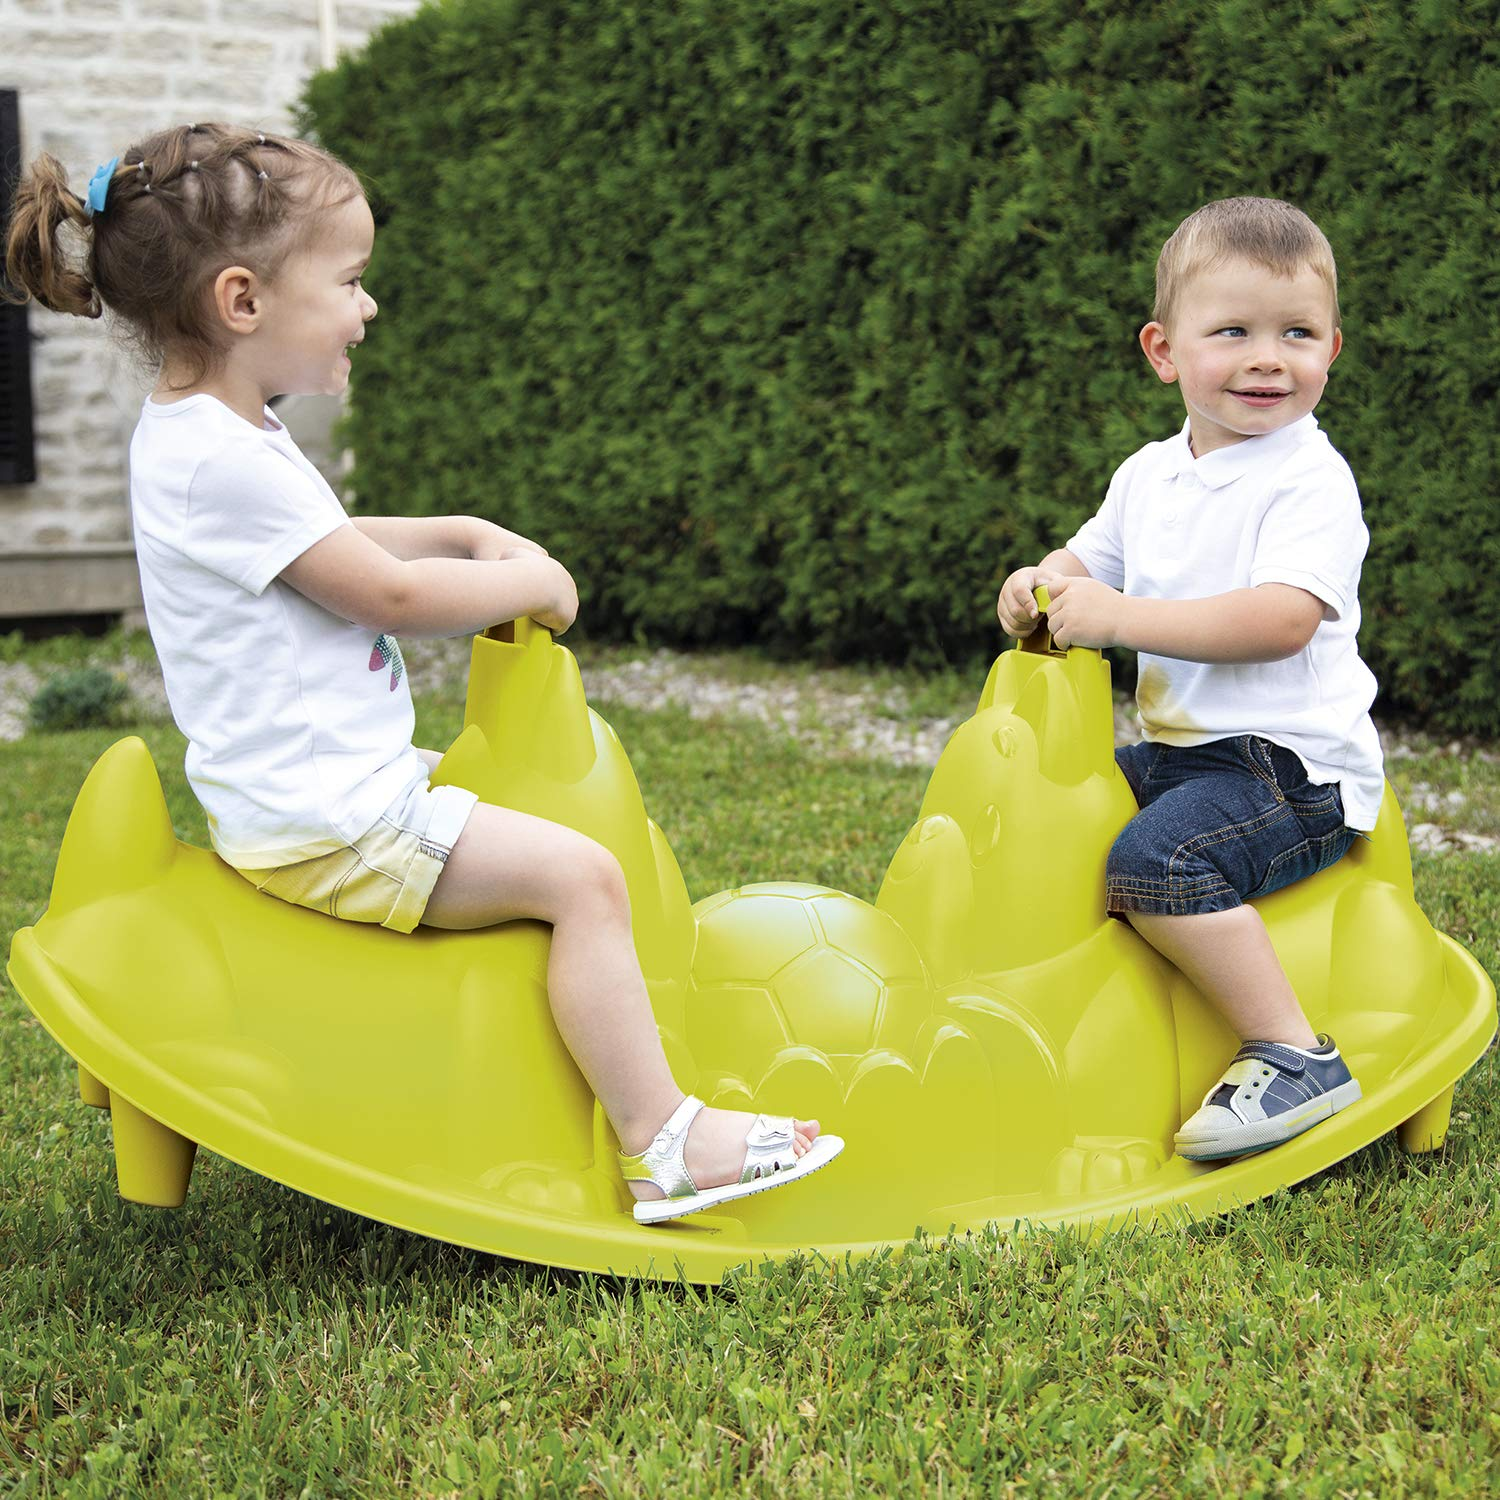 Smoby Swing Seat for Children, Green Dog (830201), Colour